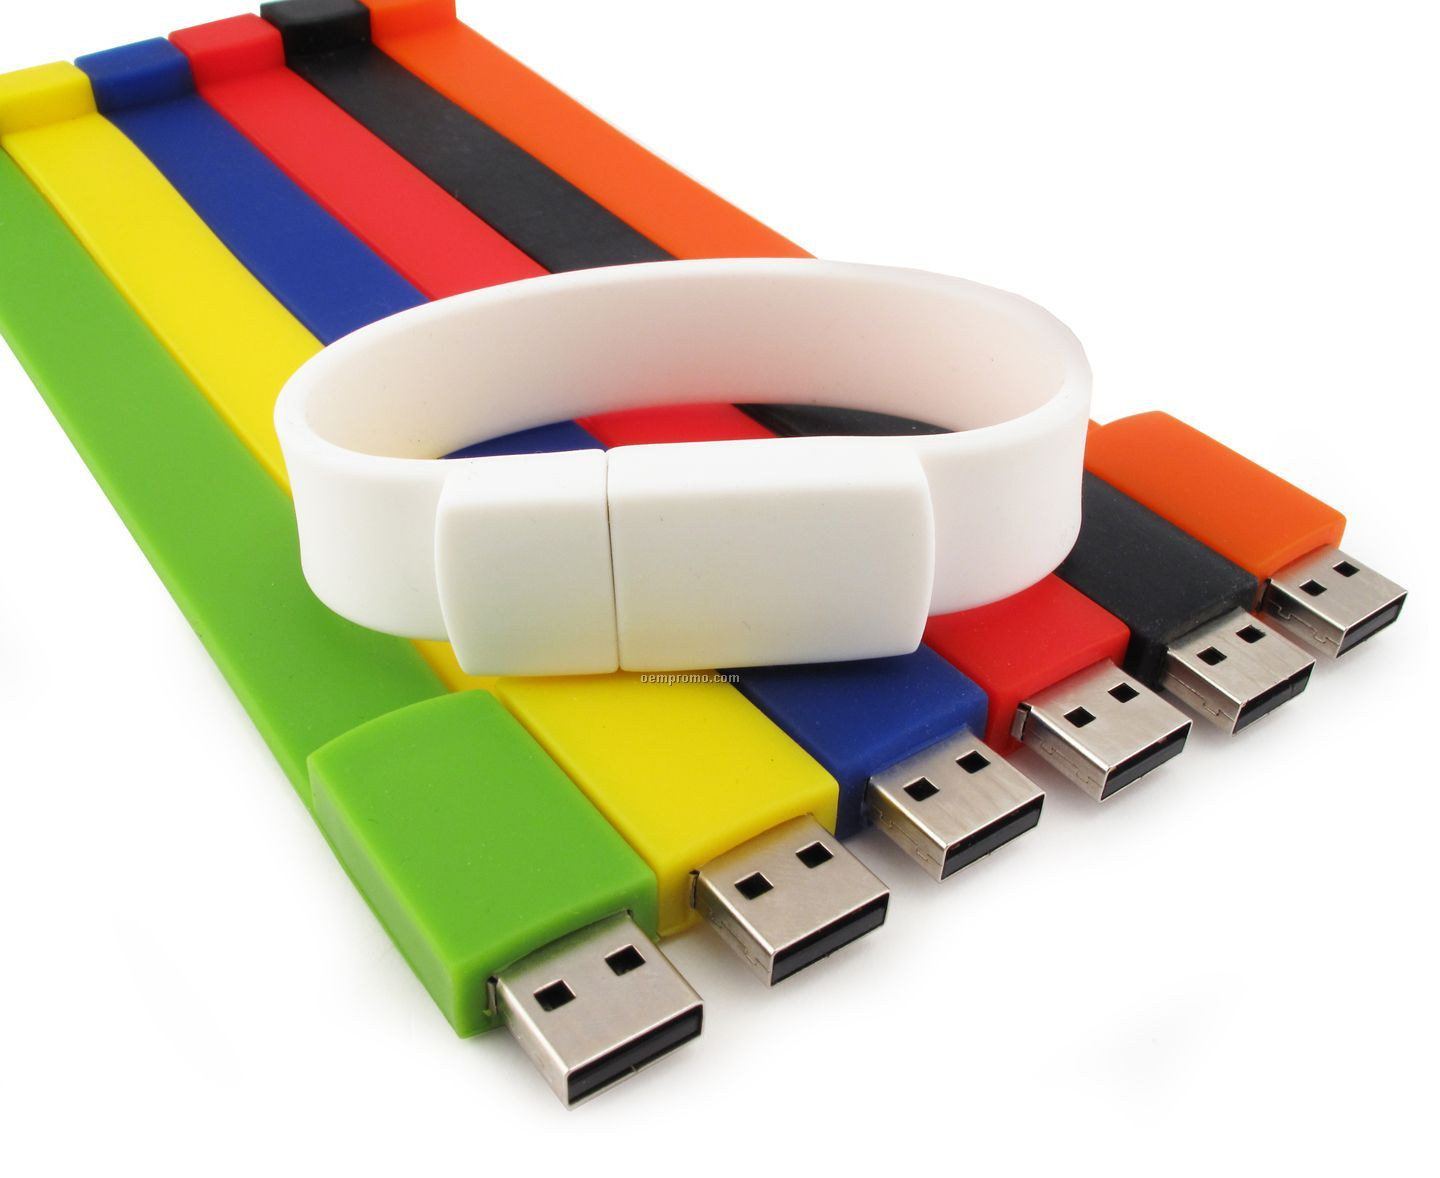 4 Gb USB Wristband 200 Series